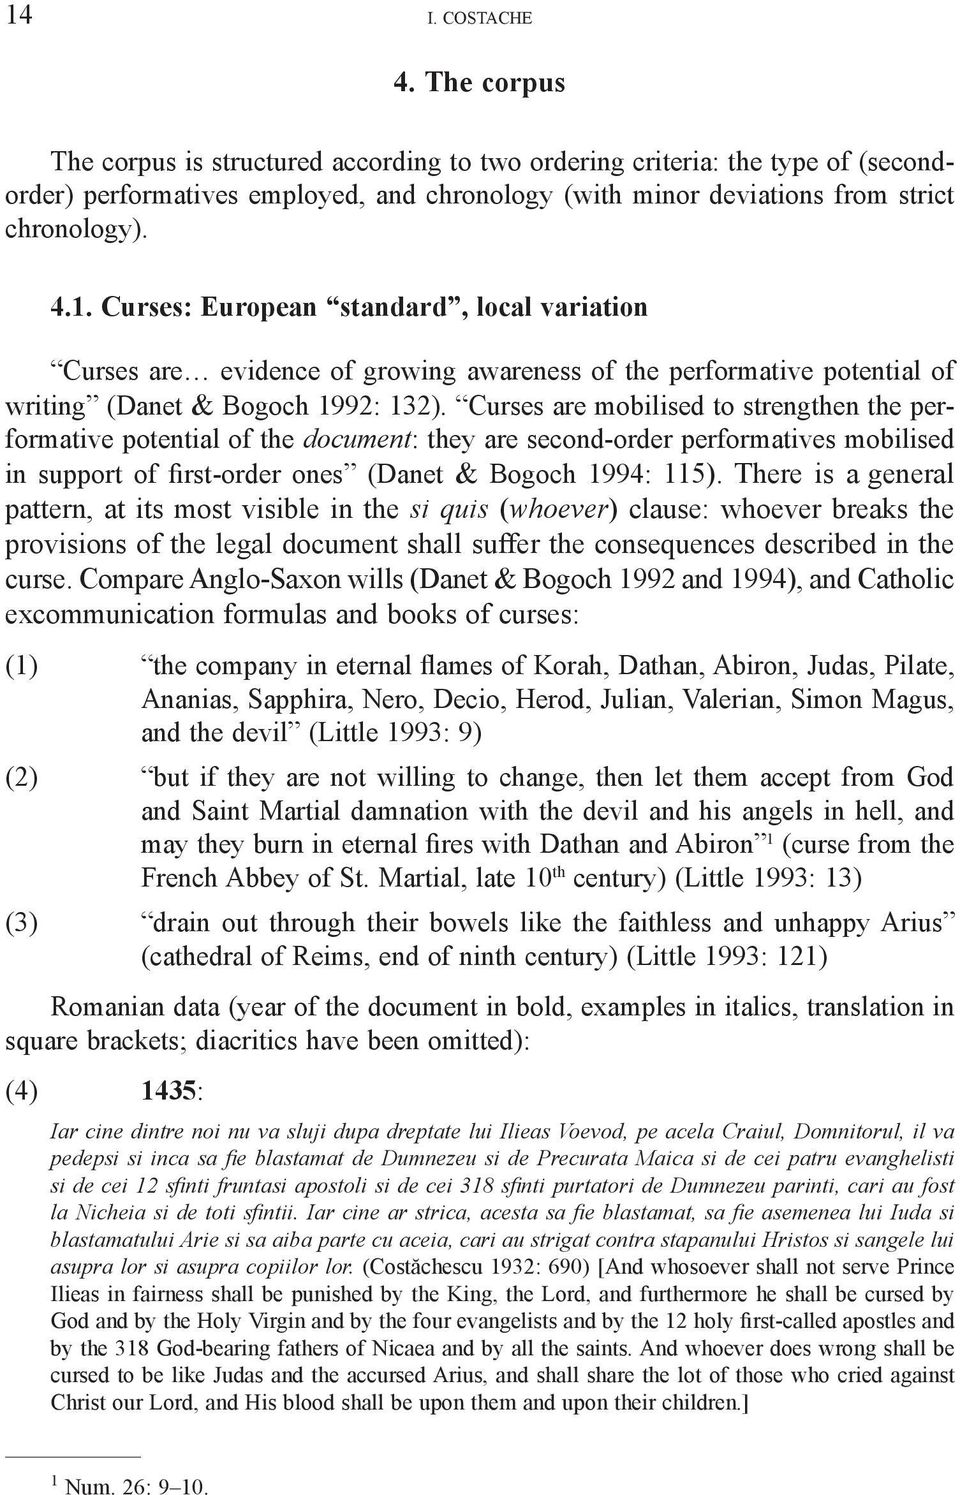 Curses: European standard, local variation Curses are evidence of growing awareness of the performative potential of writing (Danet & Bogoch 1992: 132).